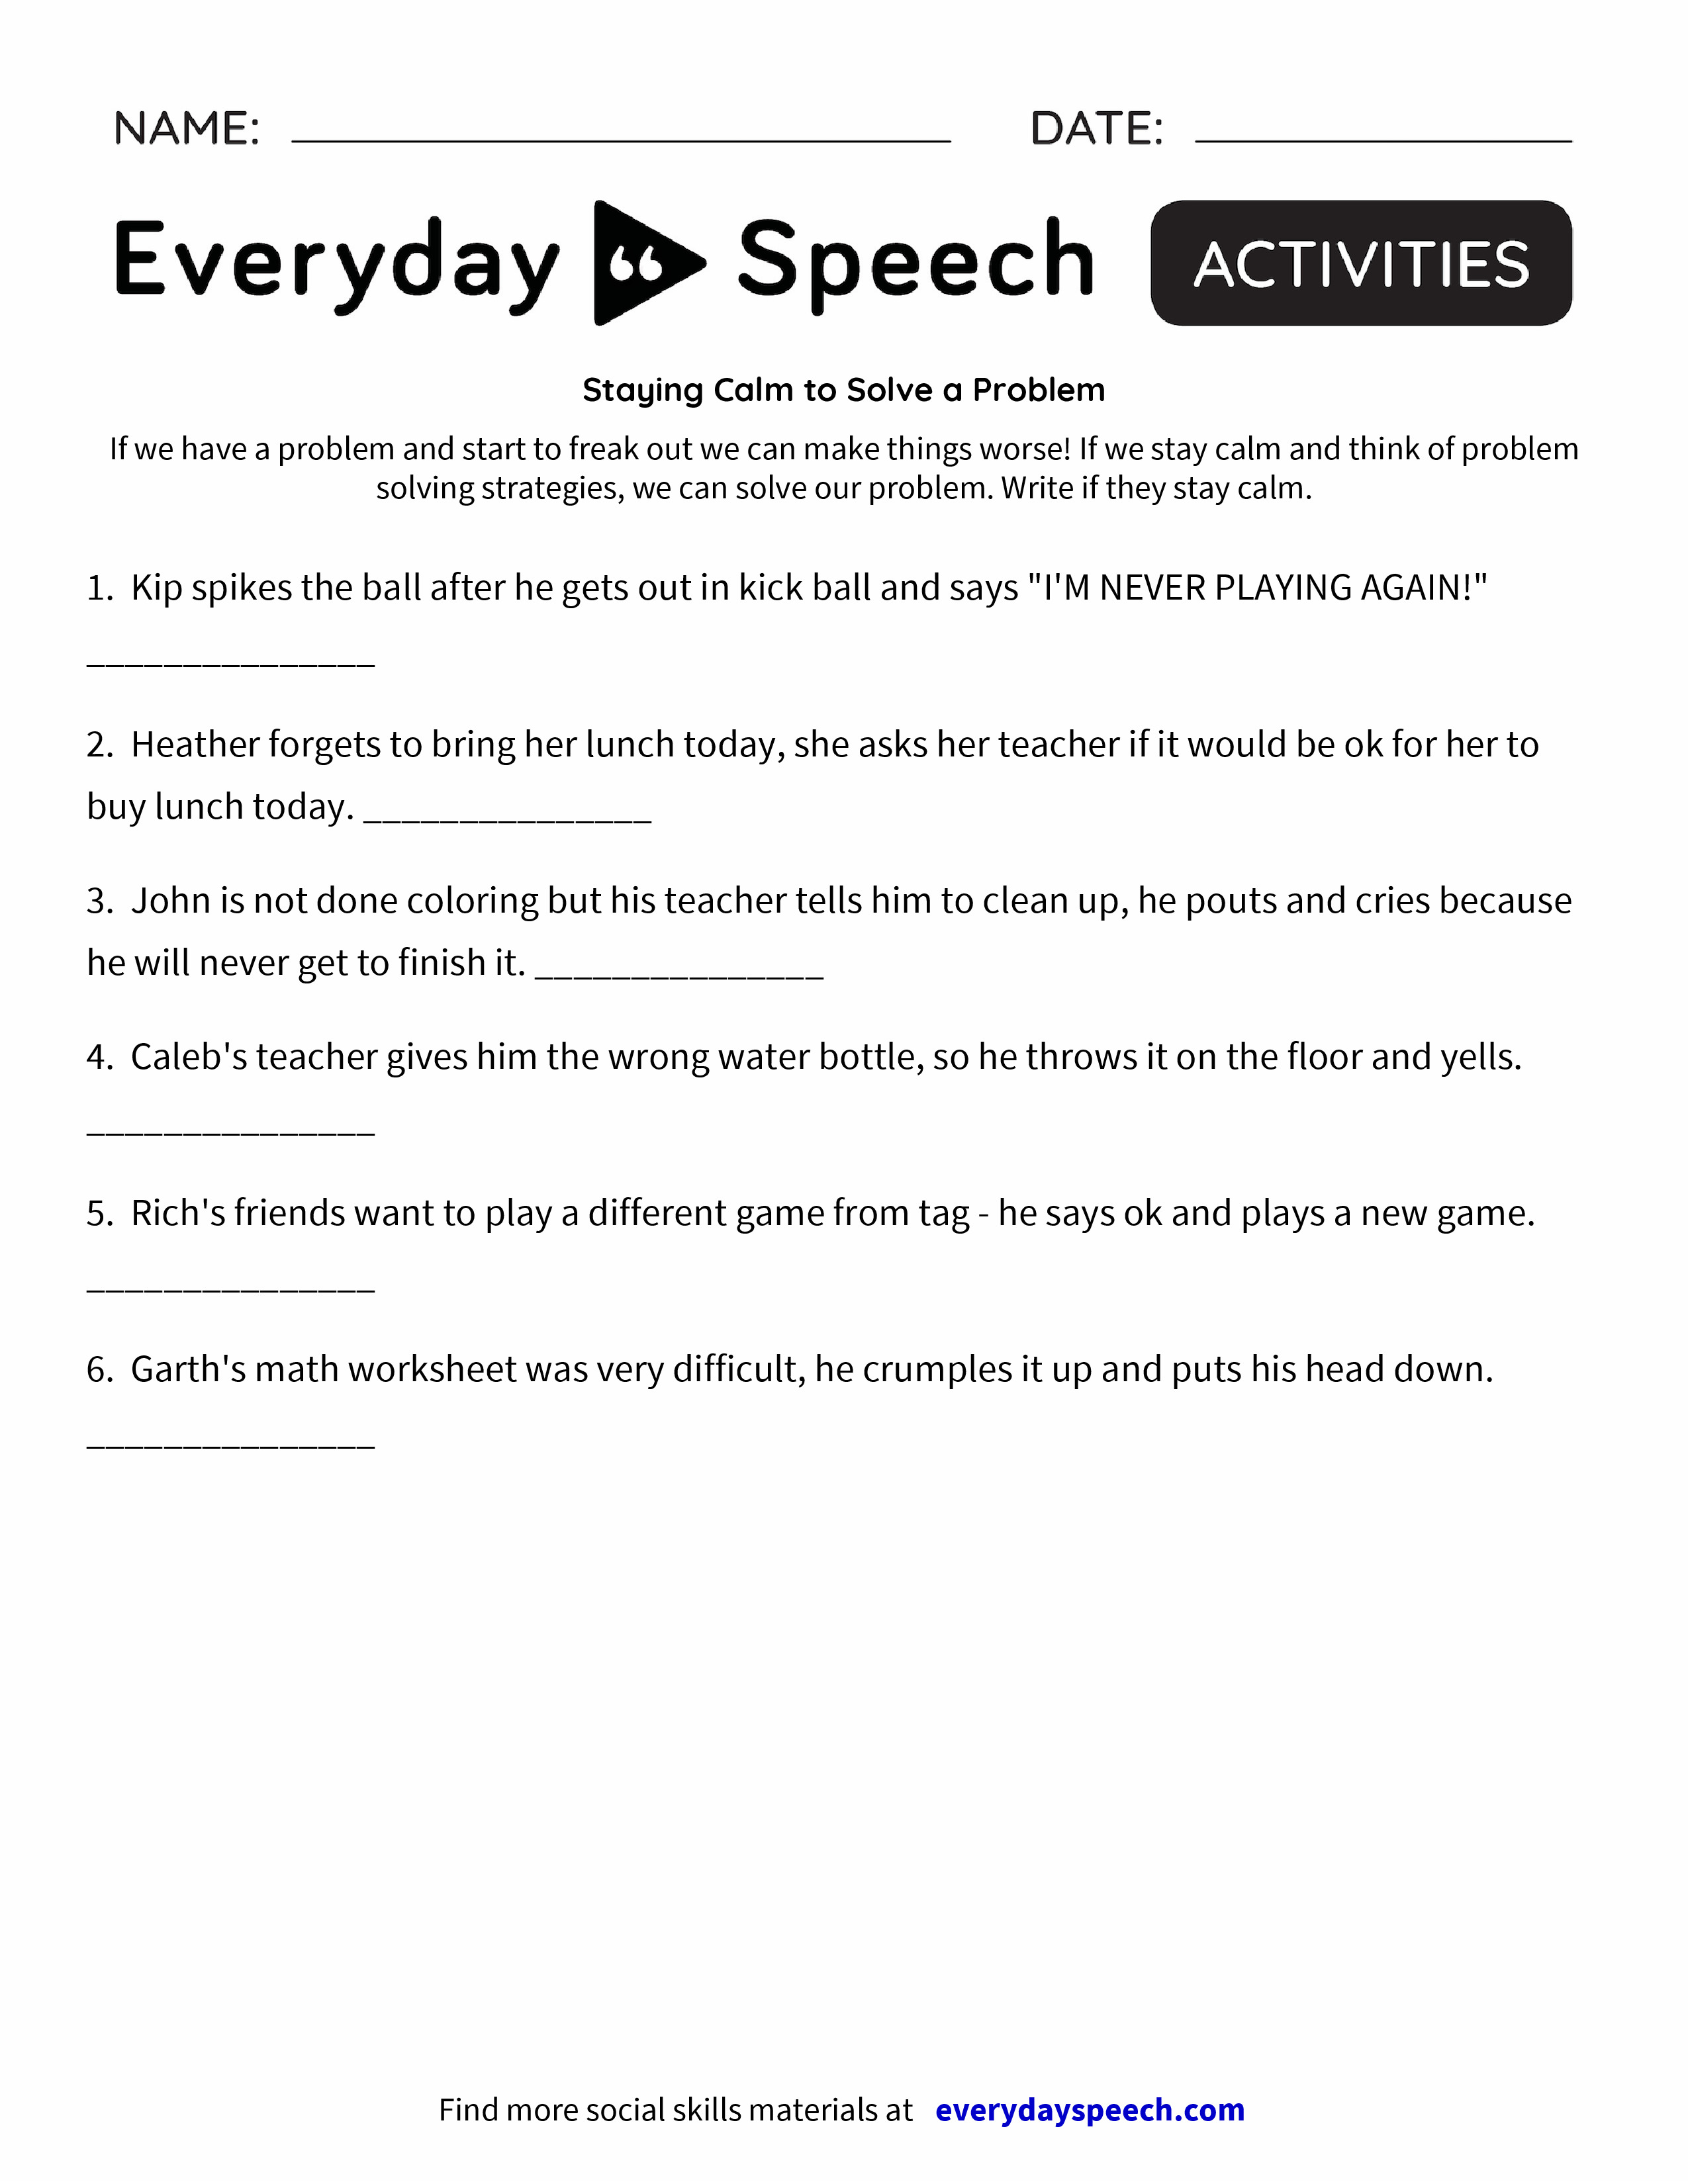 Staying Calm to Solve a Problem Everyday Speech Everyday Speech – Head Start Worksheets